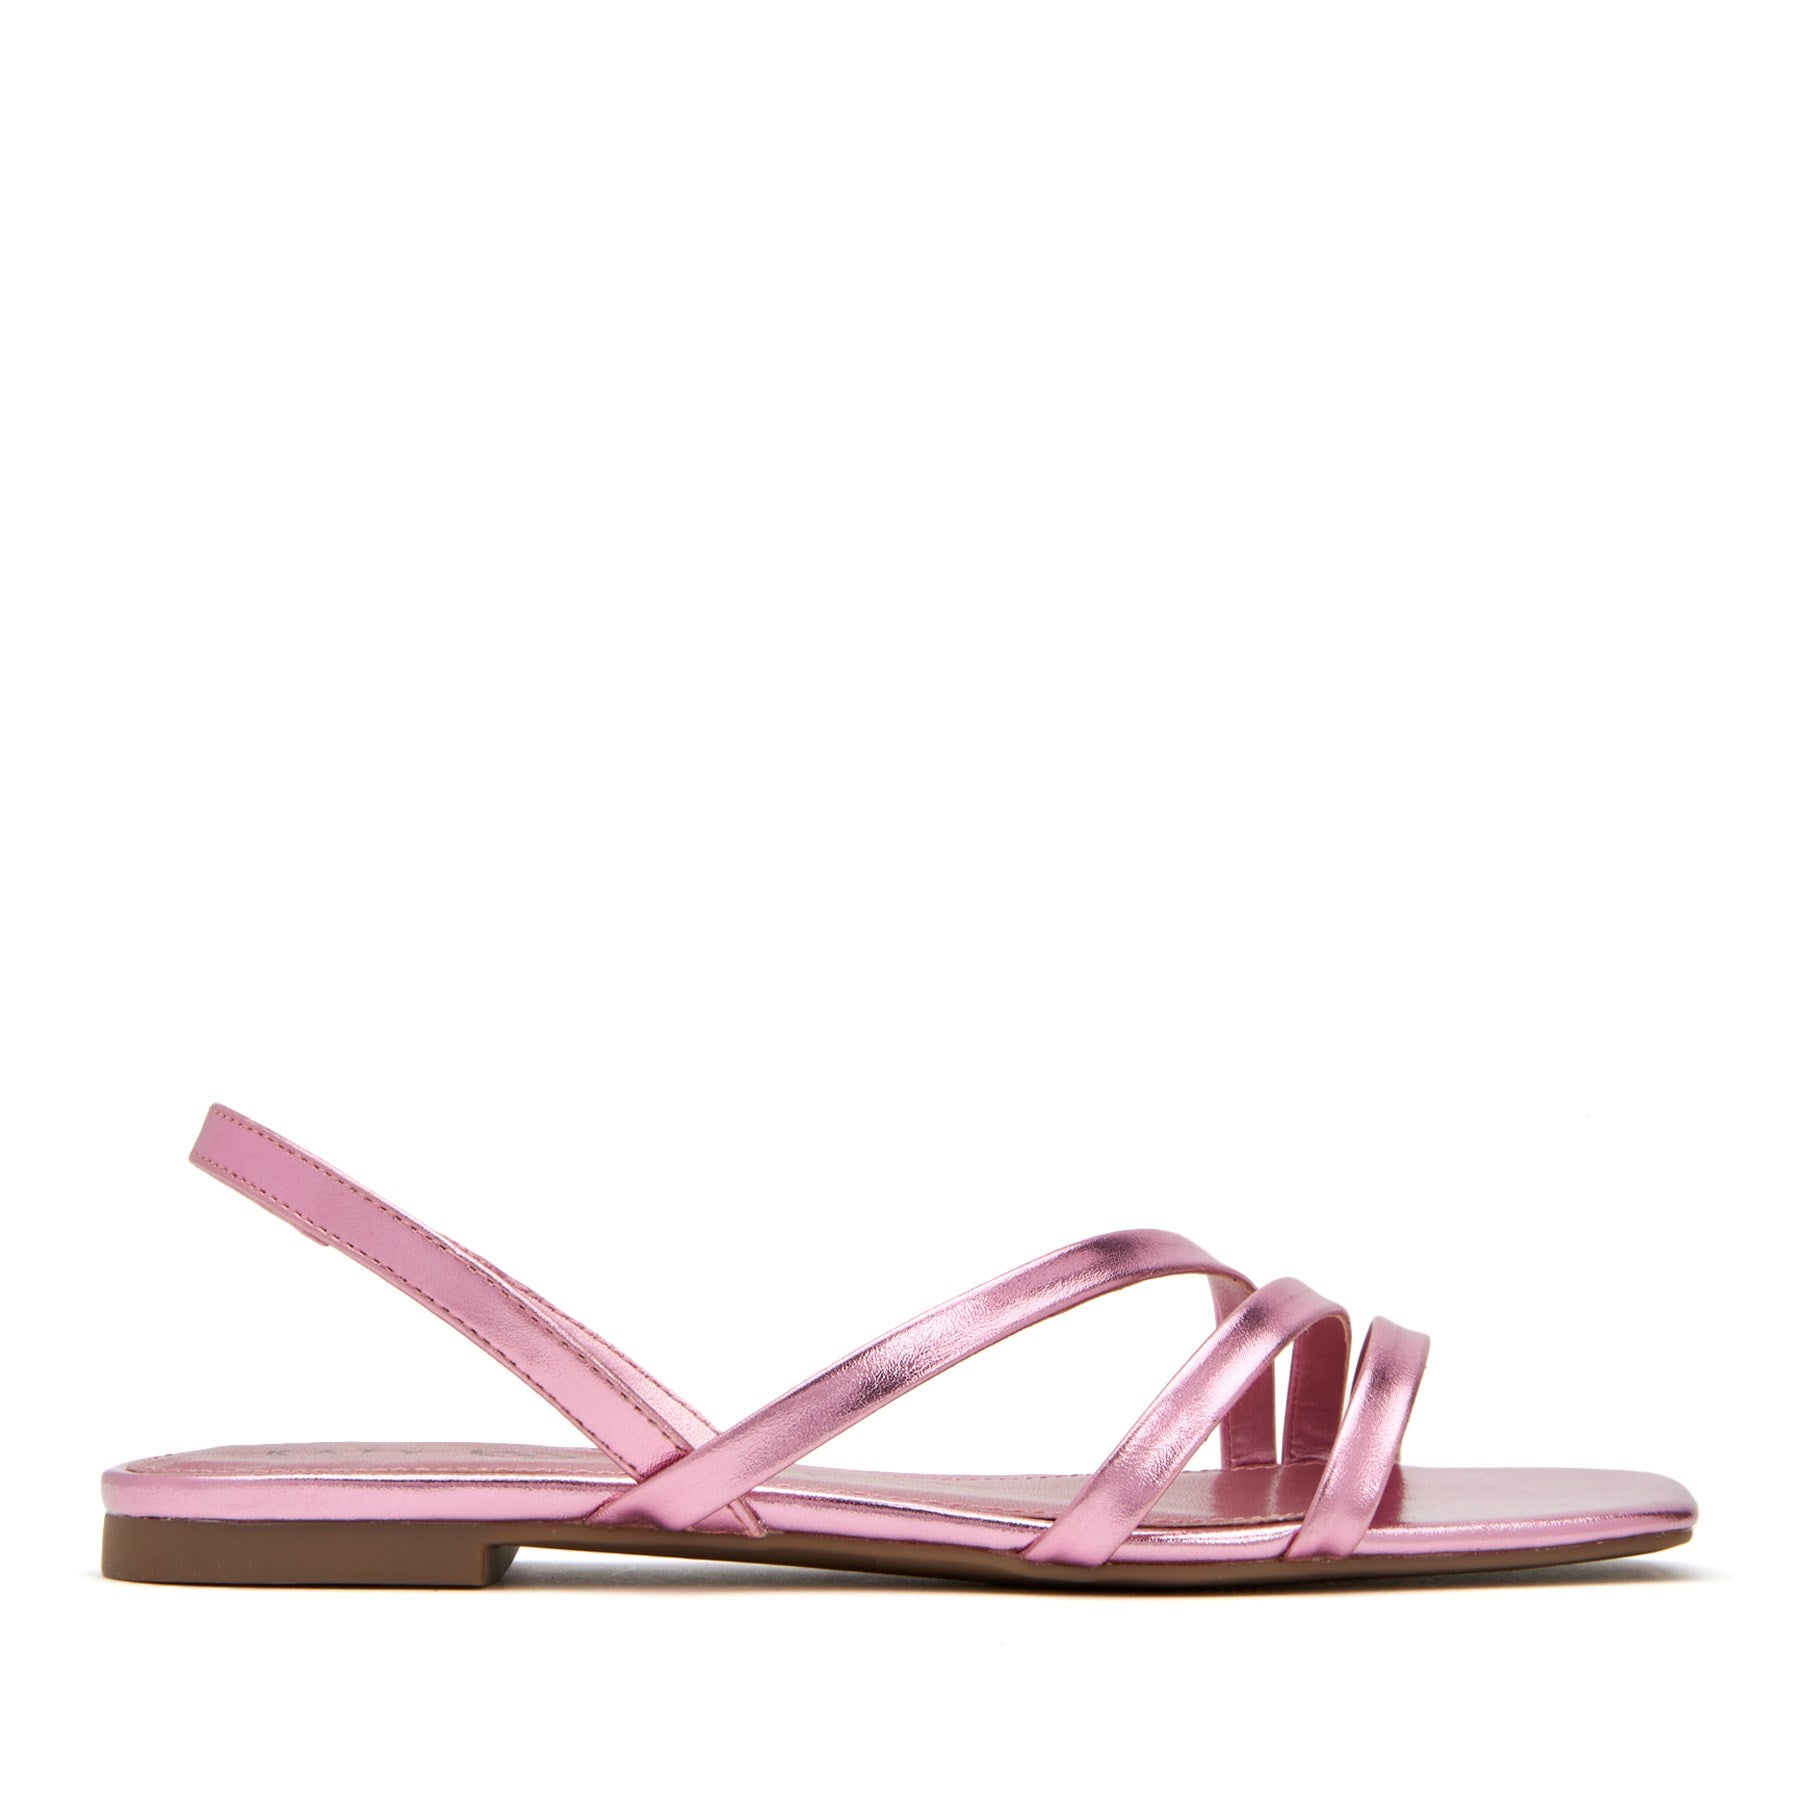 katy perry strappy sandal metallic in champagne size 9   the bondie